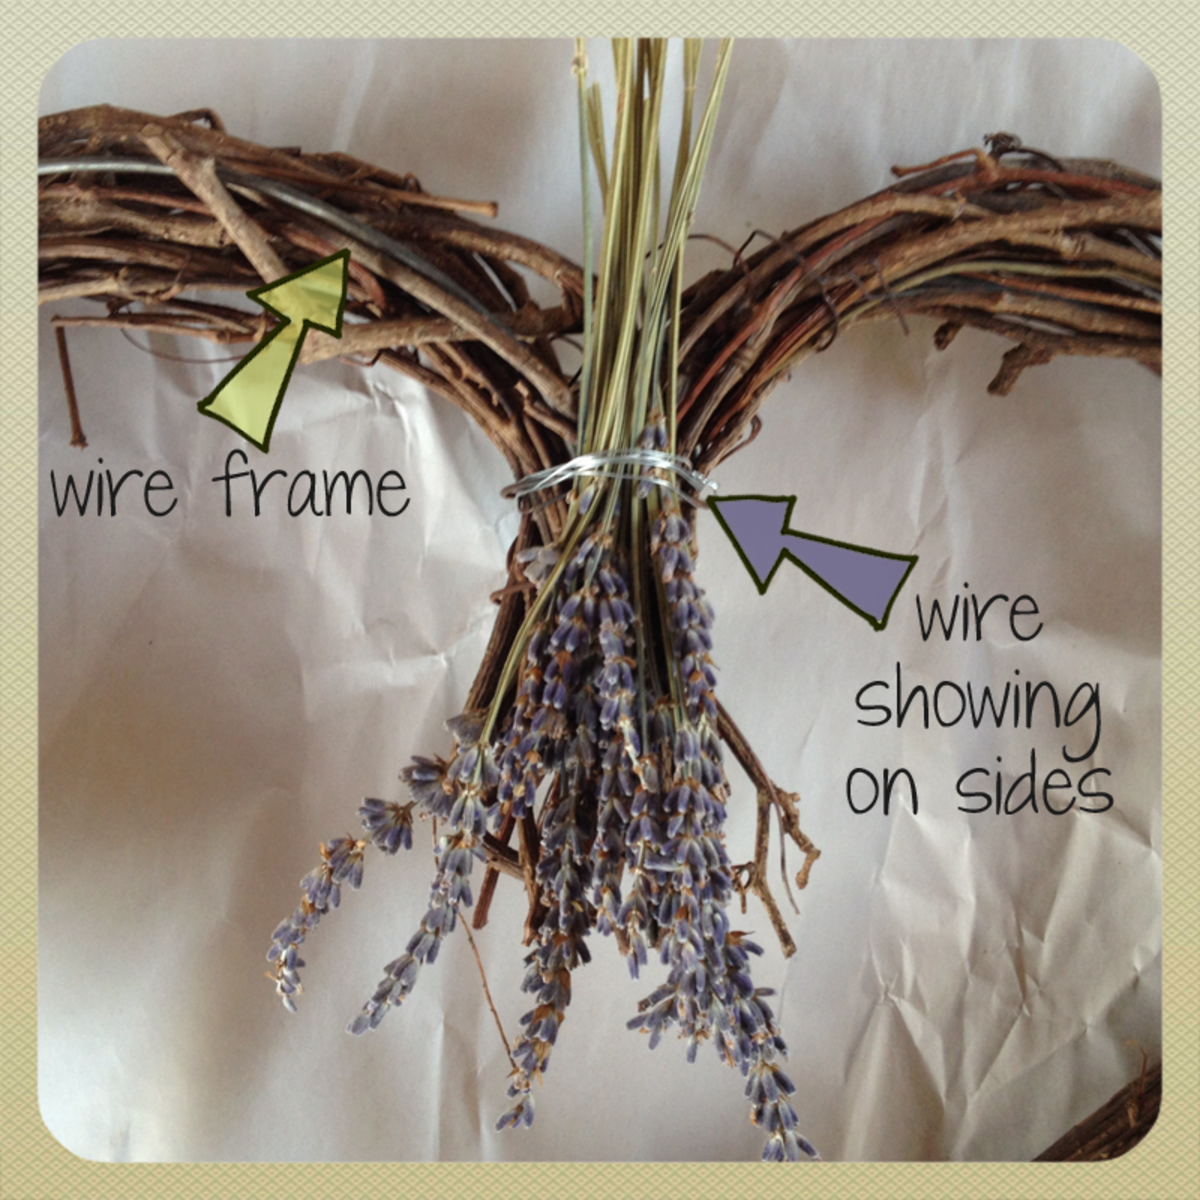 Attach lavender bunches to the wire frame of the heart to keep your wreath secure and lovely.